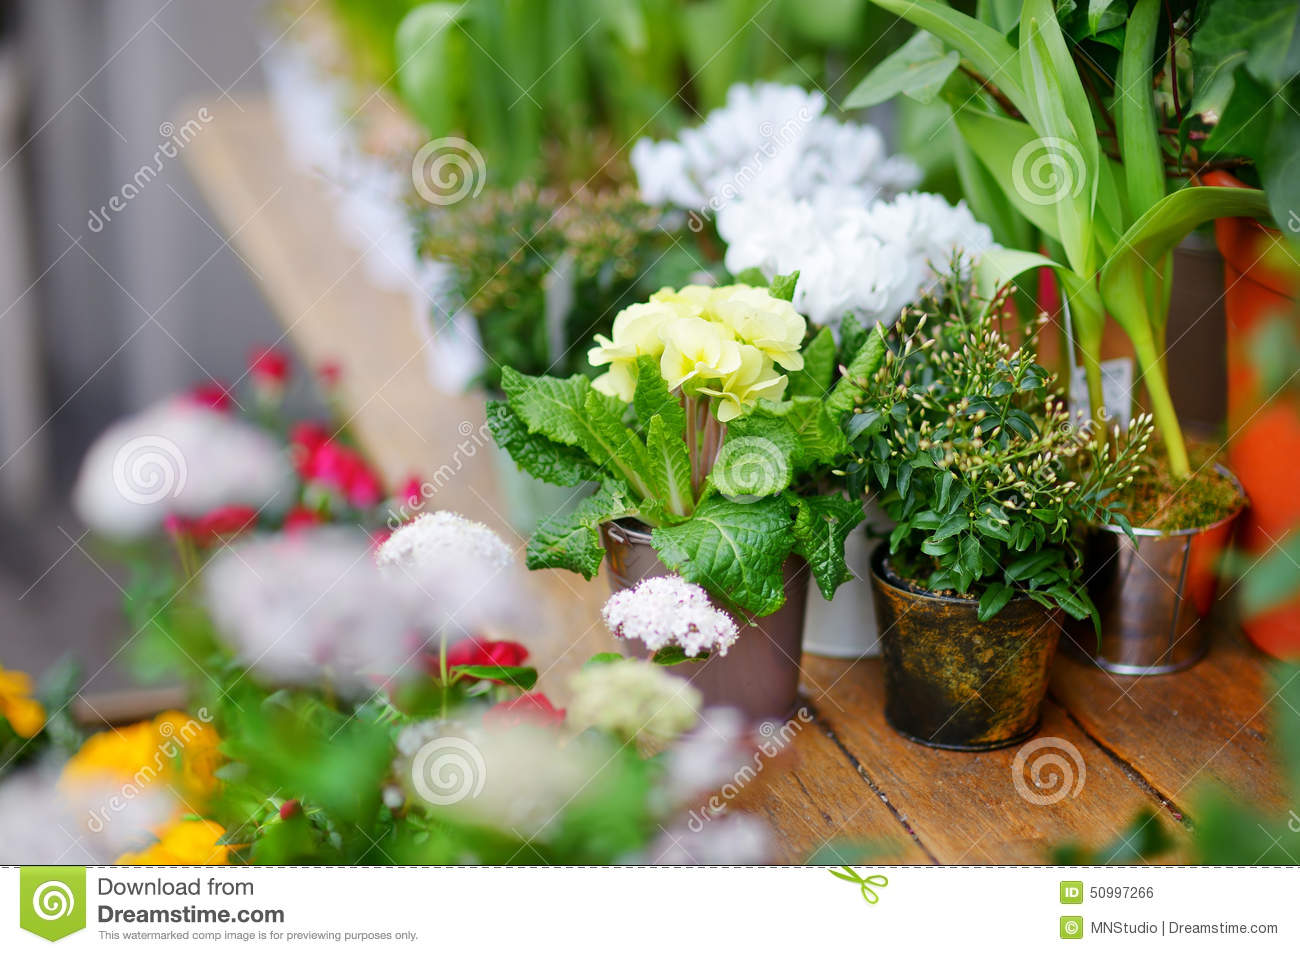 Beautiful flowers sold on outdoor flower shop stock photo image of download beautiful flowers sold on outdoor flower shop stock photo image of outdoors floral izmirmasajfo